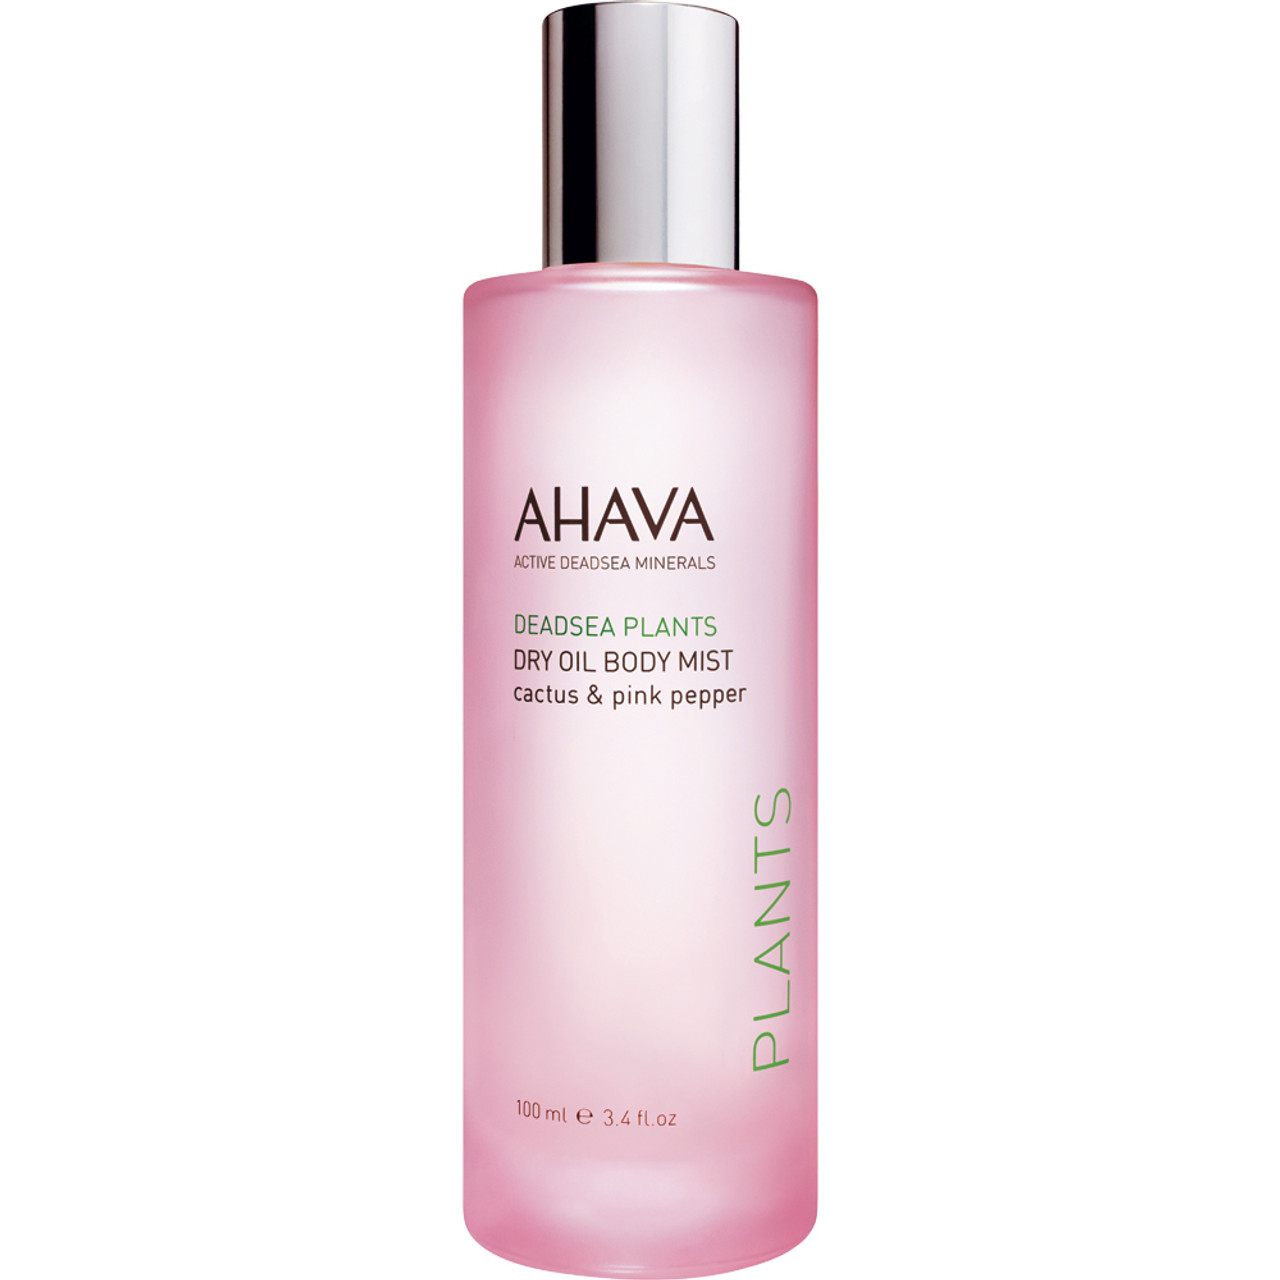 AHAVA Dry Oil Body Mist Cactus And Pink Pepper